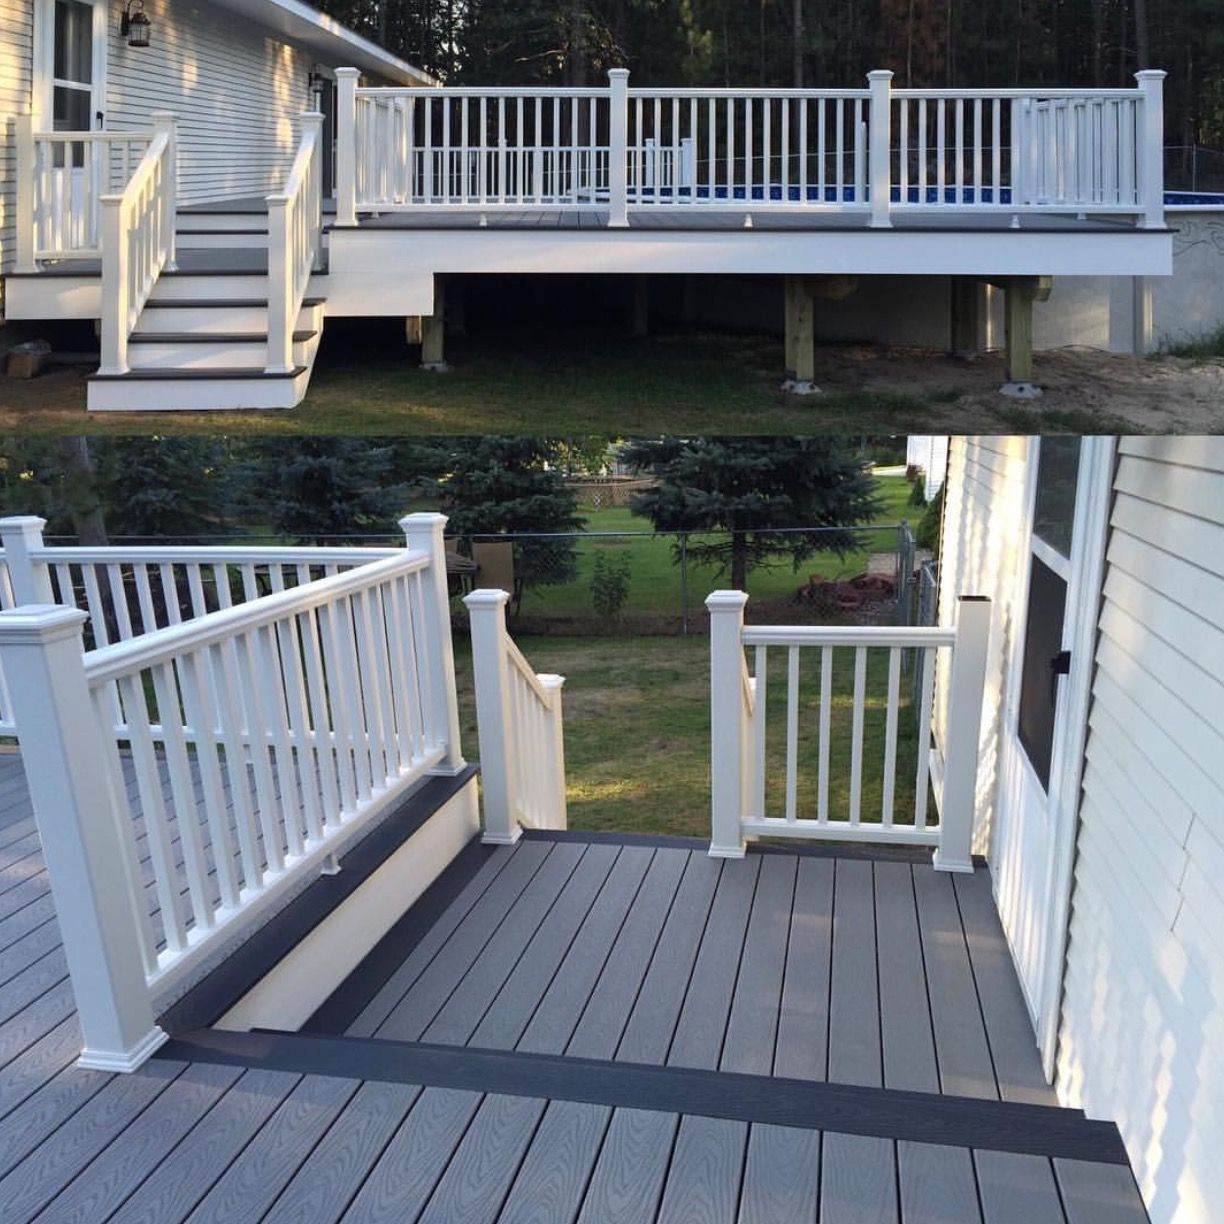 Trex Pebble Grey And Winchester Grey Decking With Trex Transcend Railing Call Renewit Group To Schedule Your Deck Today 844 Renewit 736 3948 Www Renew Terrasse